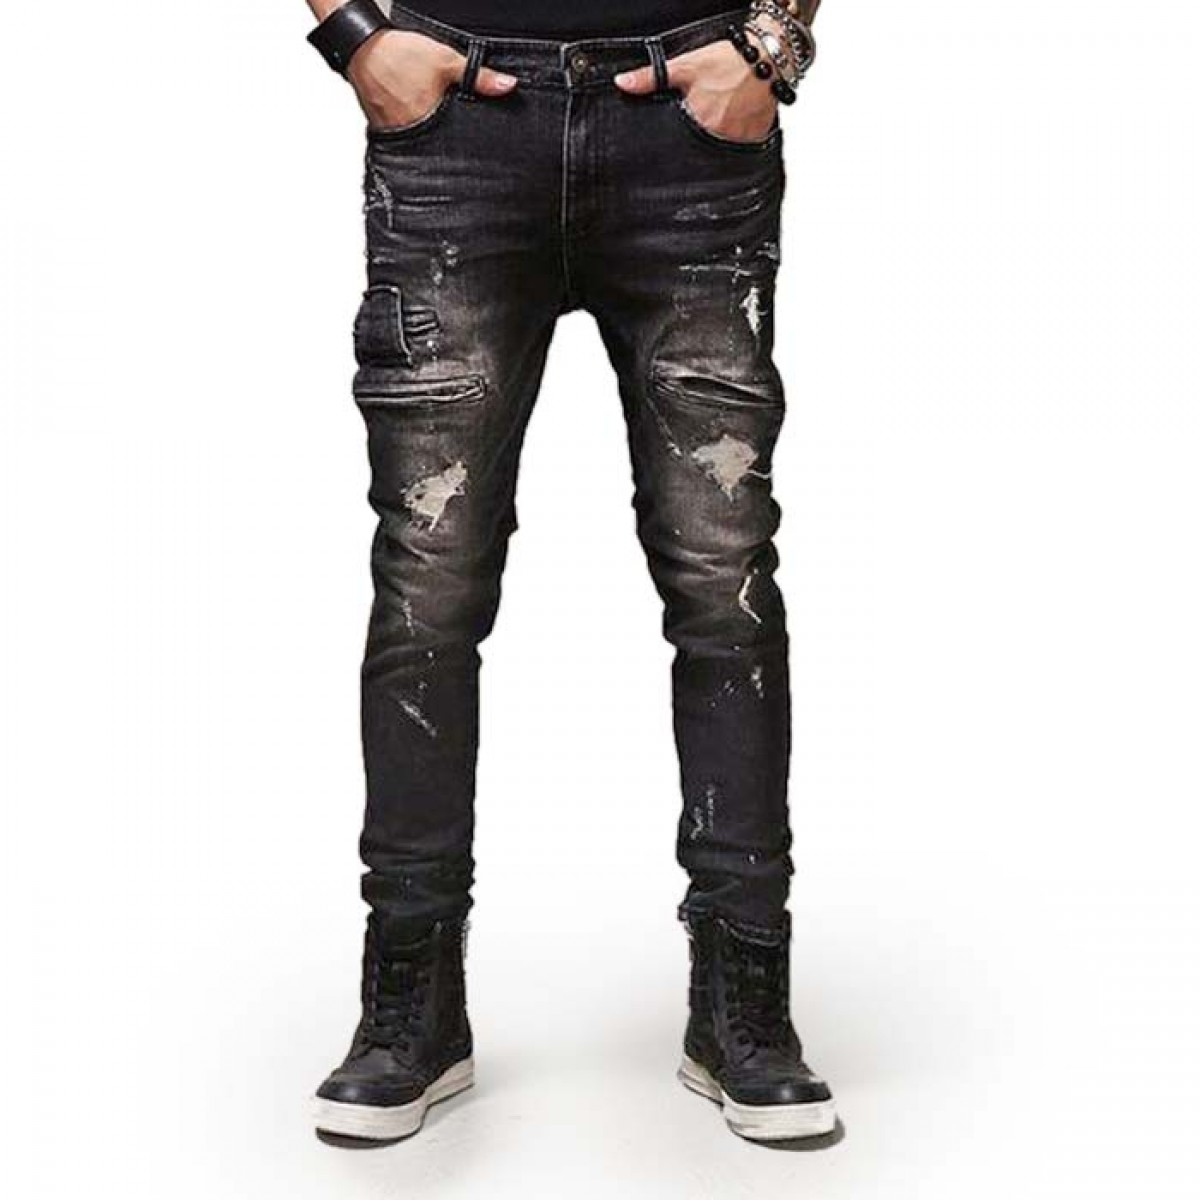 Men's Black Jeans. Black jeans are a true wardrobe staple and you really need a pair in your life. They're versatile, look great and will never go out of style. We like to wear ours with a denim shirt and chelsea boots. View All Jeans; Washed Black Ripped Stretch Skinny Jeans.